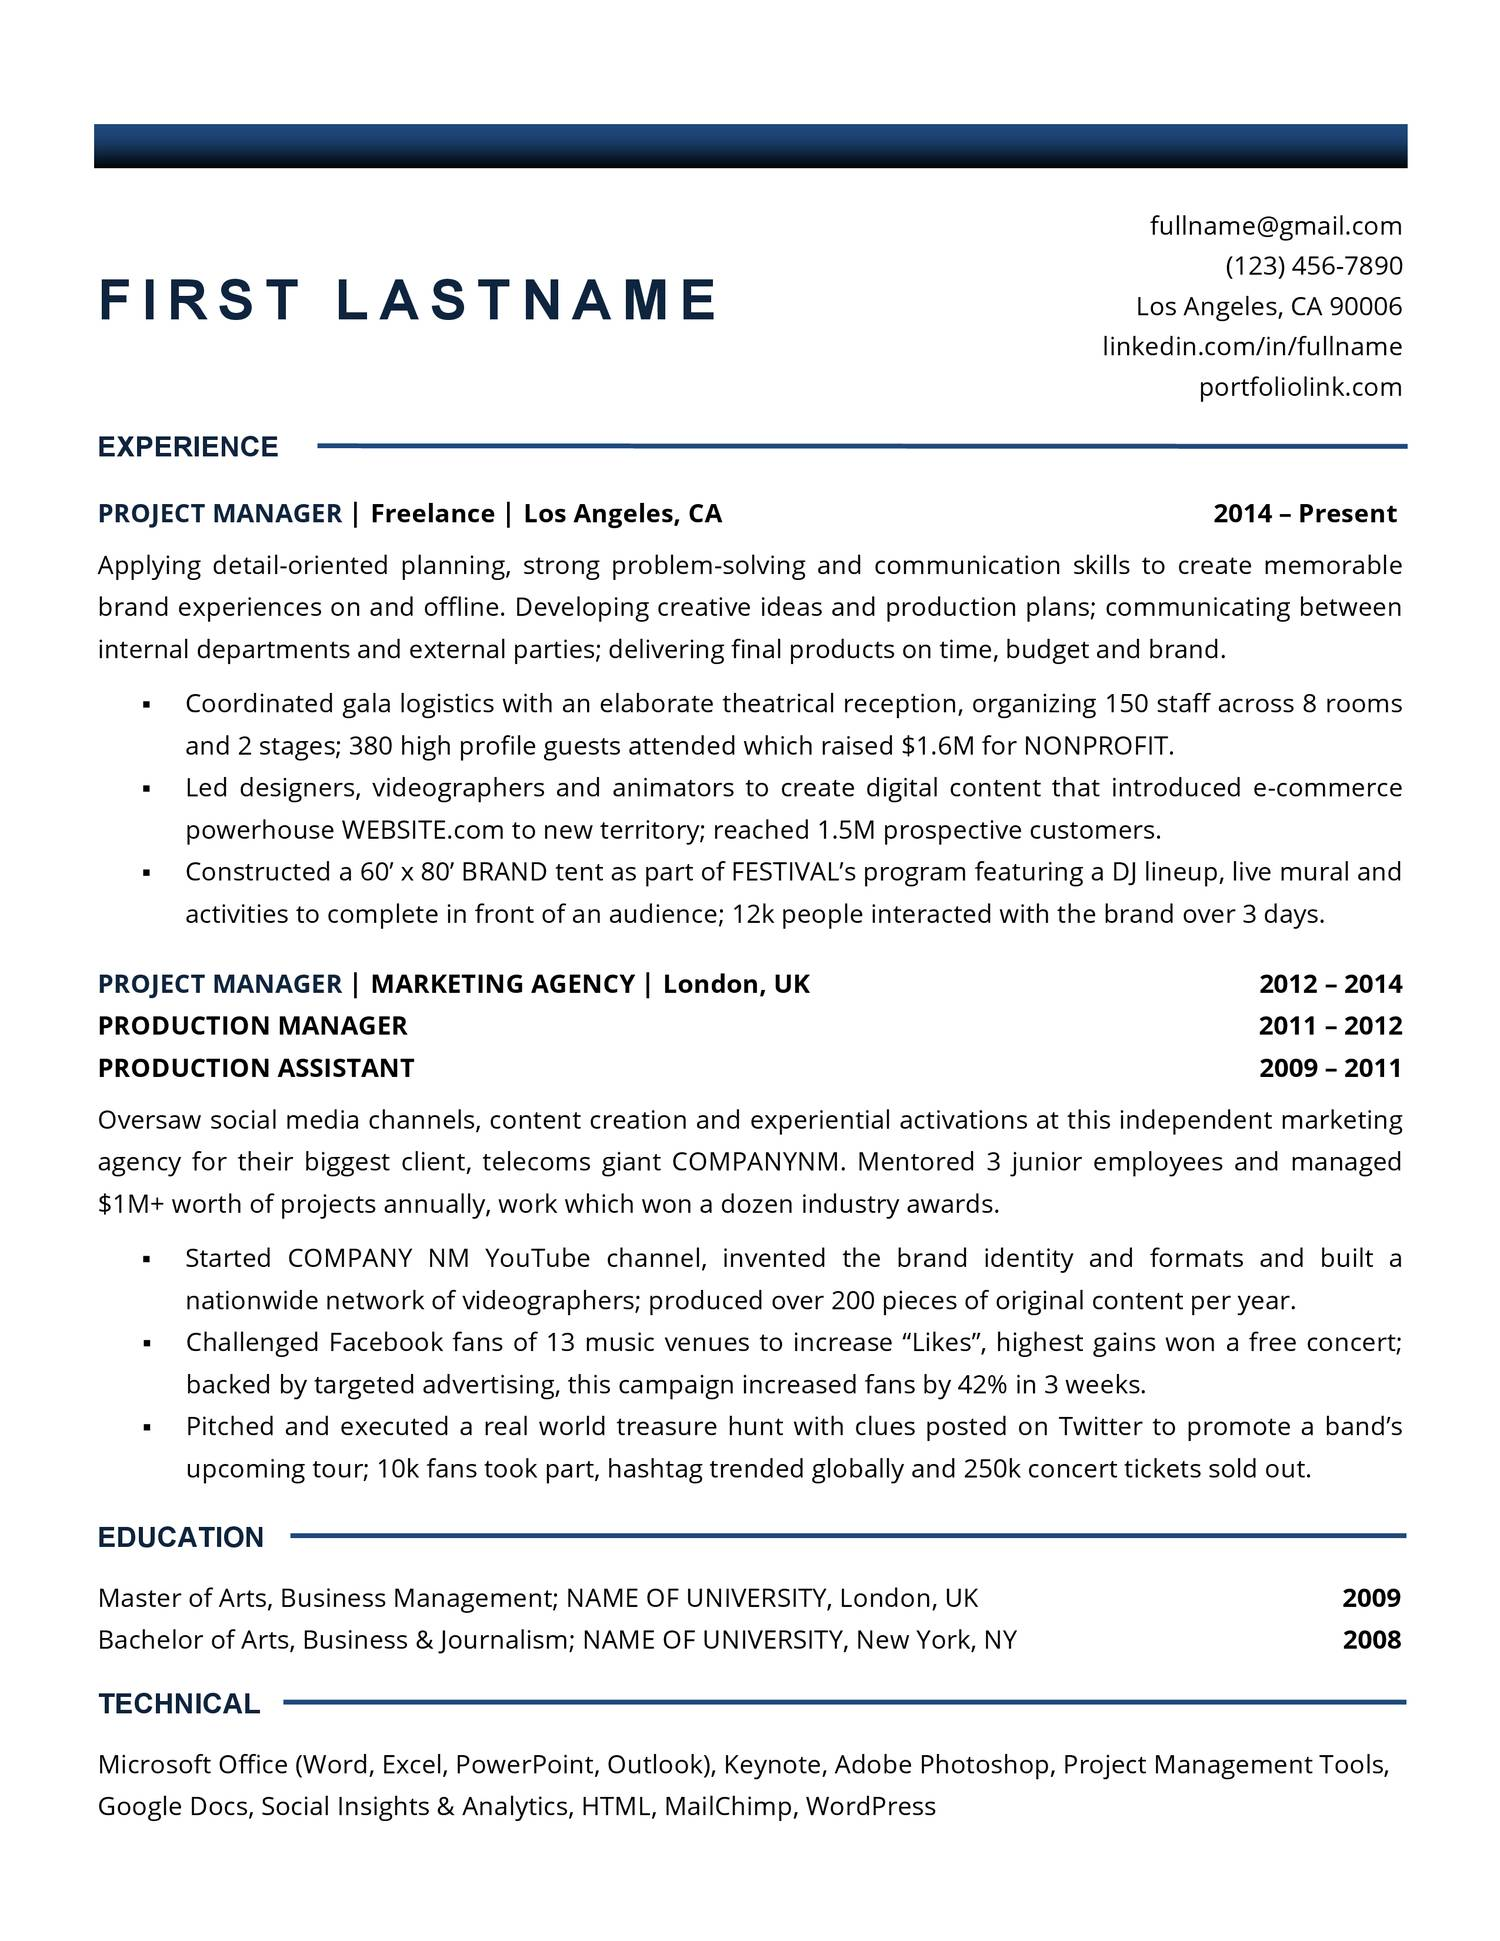 Reddit Project Manager Resume pdf | DocDroid